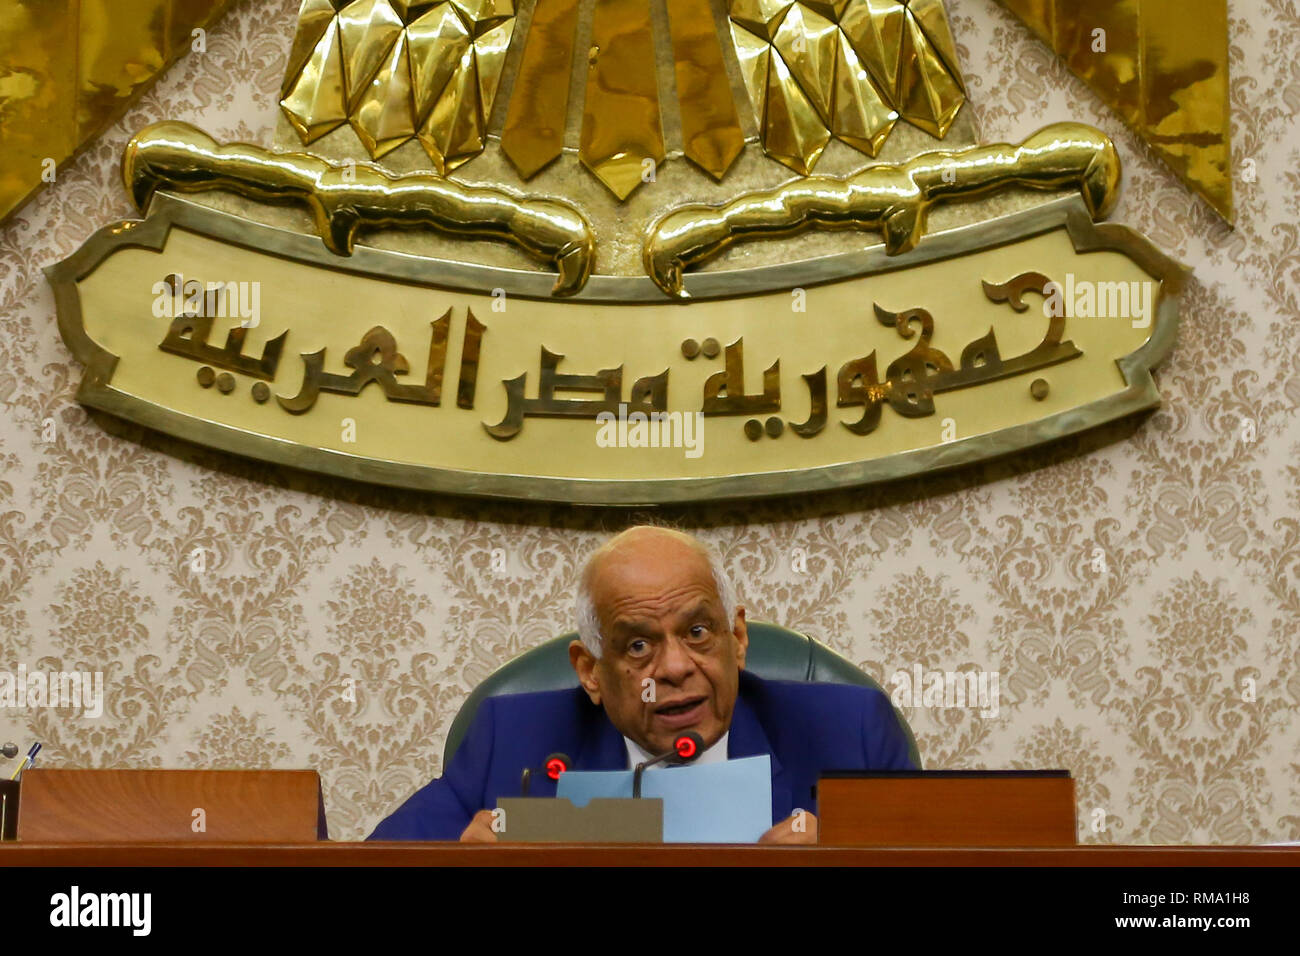 14 February 2019, Egypt, Cairo: Egypt's Parliament Speaker Ali Abdel Aal announces the results of the voting of the Parliament members on the proposed constitutional amendments that will increase the country's President term in office from four to six years after deliberations a day earlier. MPs voted in favour the initial approval of the proposed amendments which will now be referred to the Legislative and Constitutional Affairs Committee to be discussed in detail and to be finalized before being referred to the President to be put up for a public vote in a national referendum. Photo: Lobna T - Stock Image